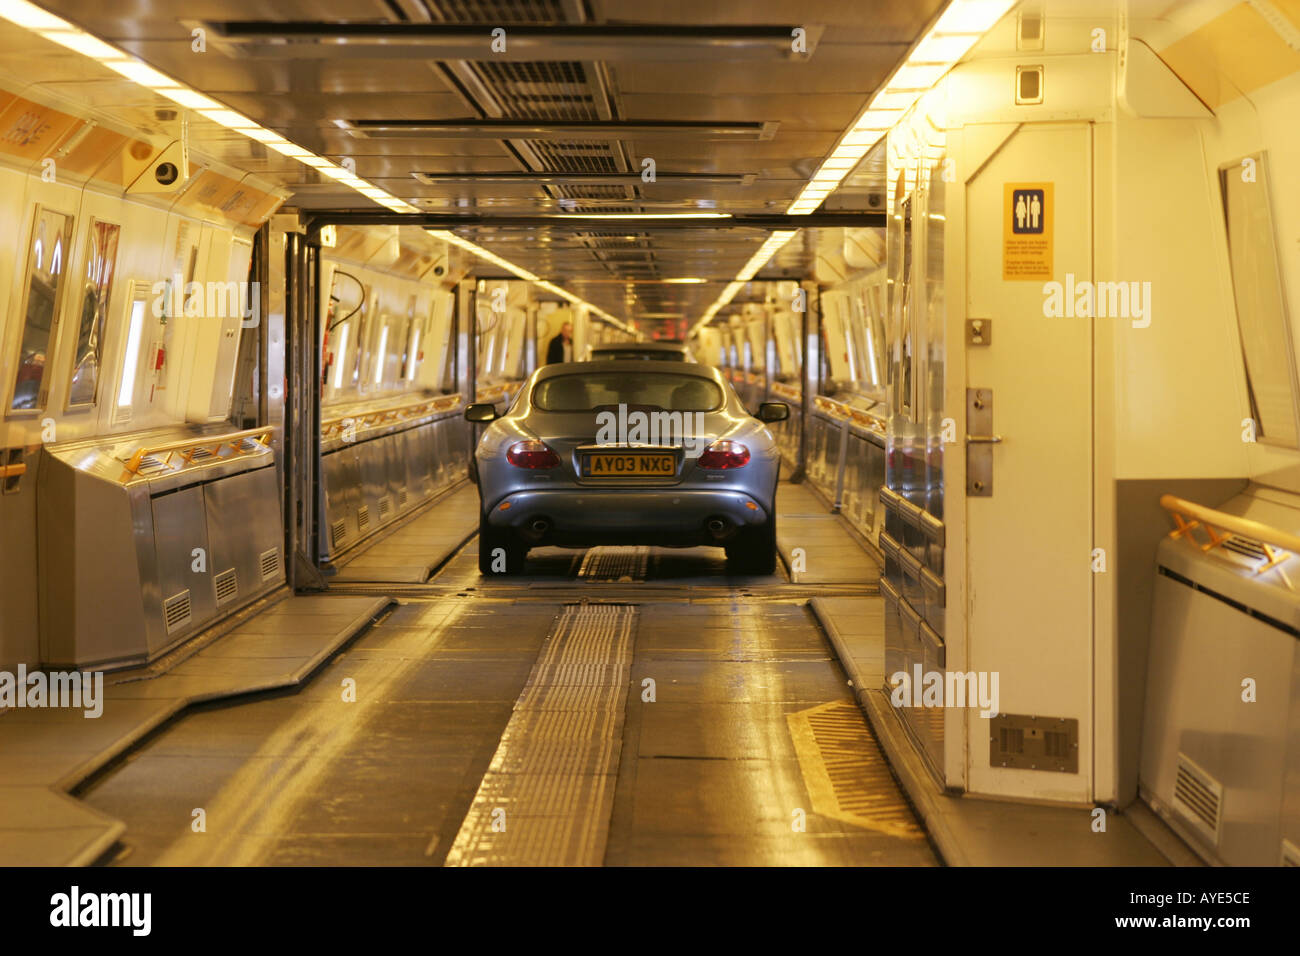 channel tunnel car train interior france uk stock photo 1828301 alamy. Black Bedroom Furniture Sets. Home Design Ideas